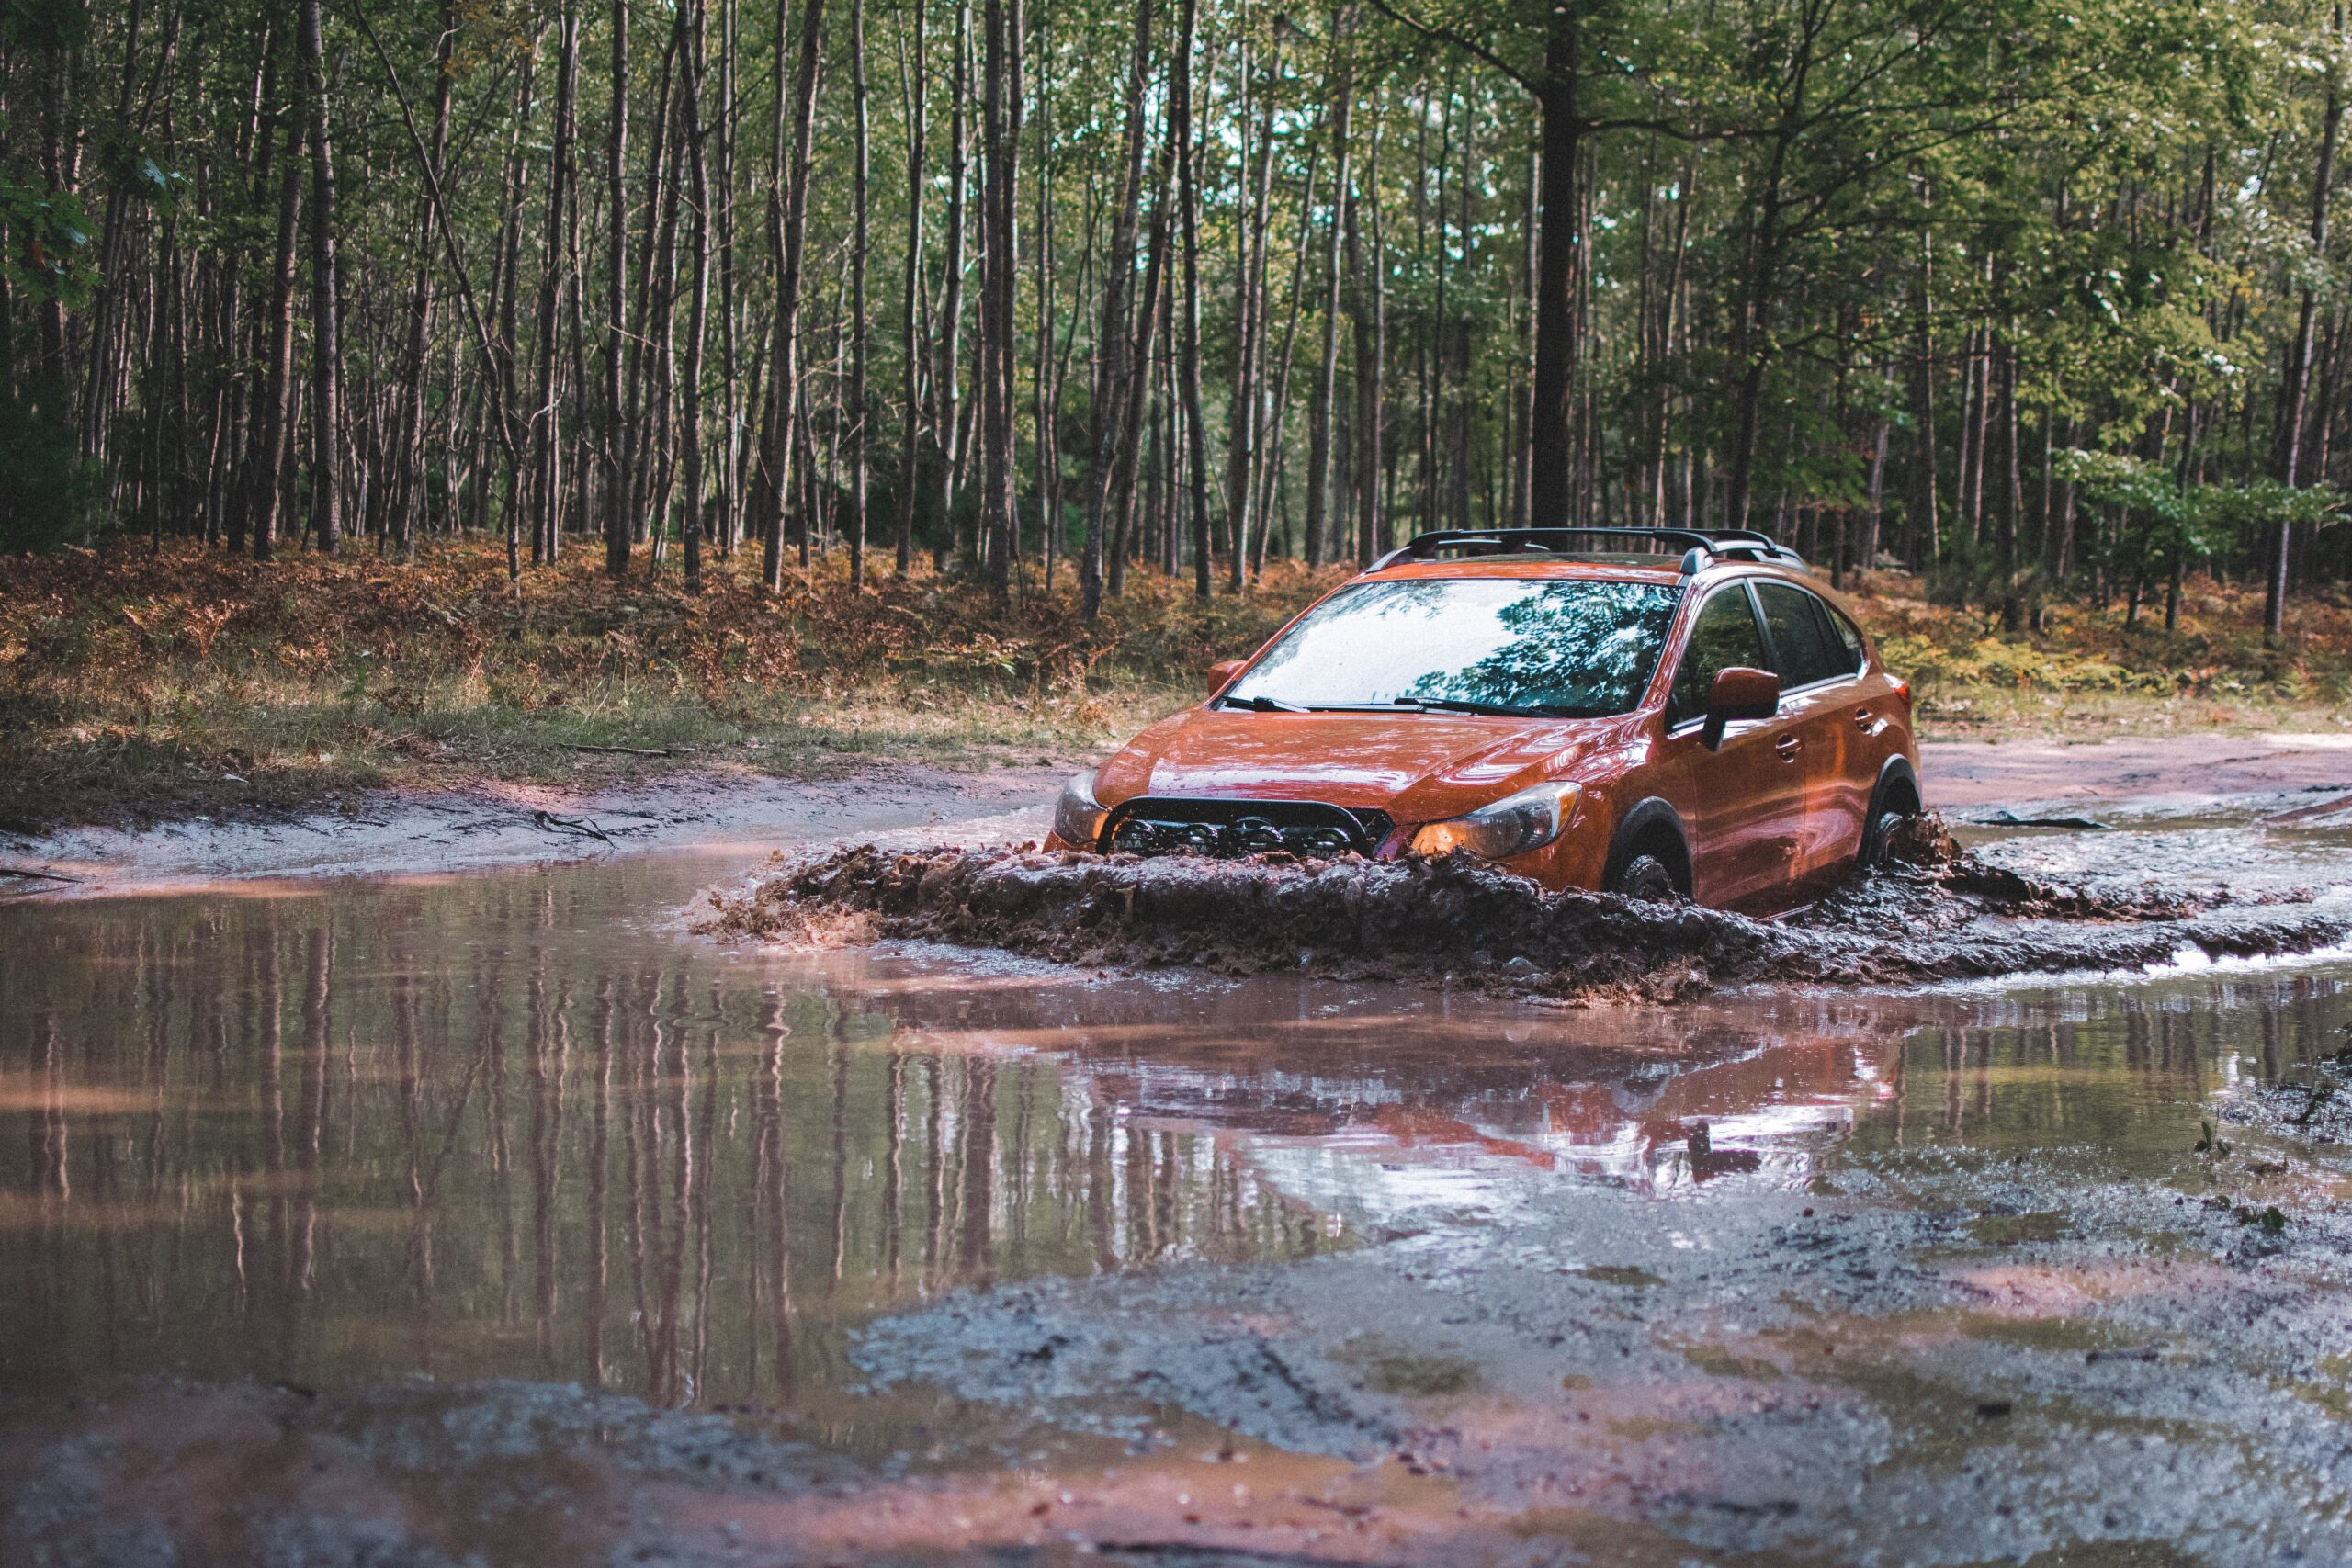 lifted subaru crosstrek going through a deep mud puddle with all terrain tires